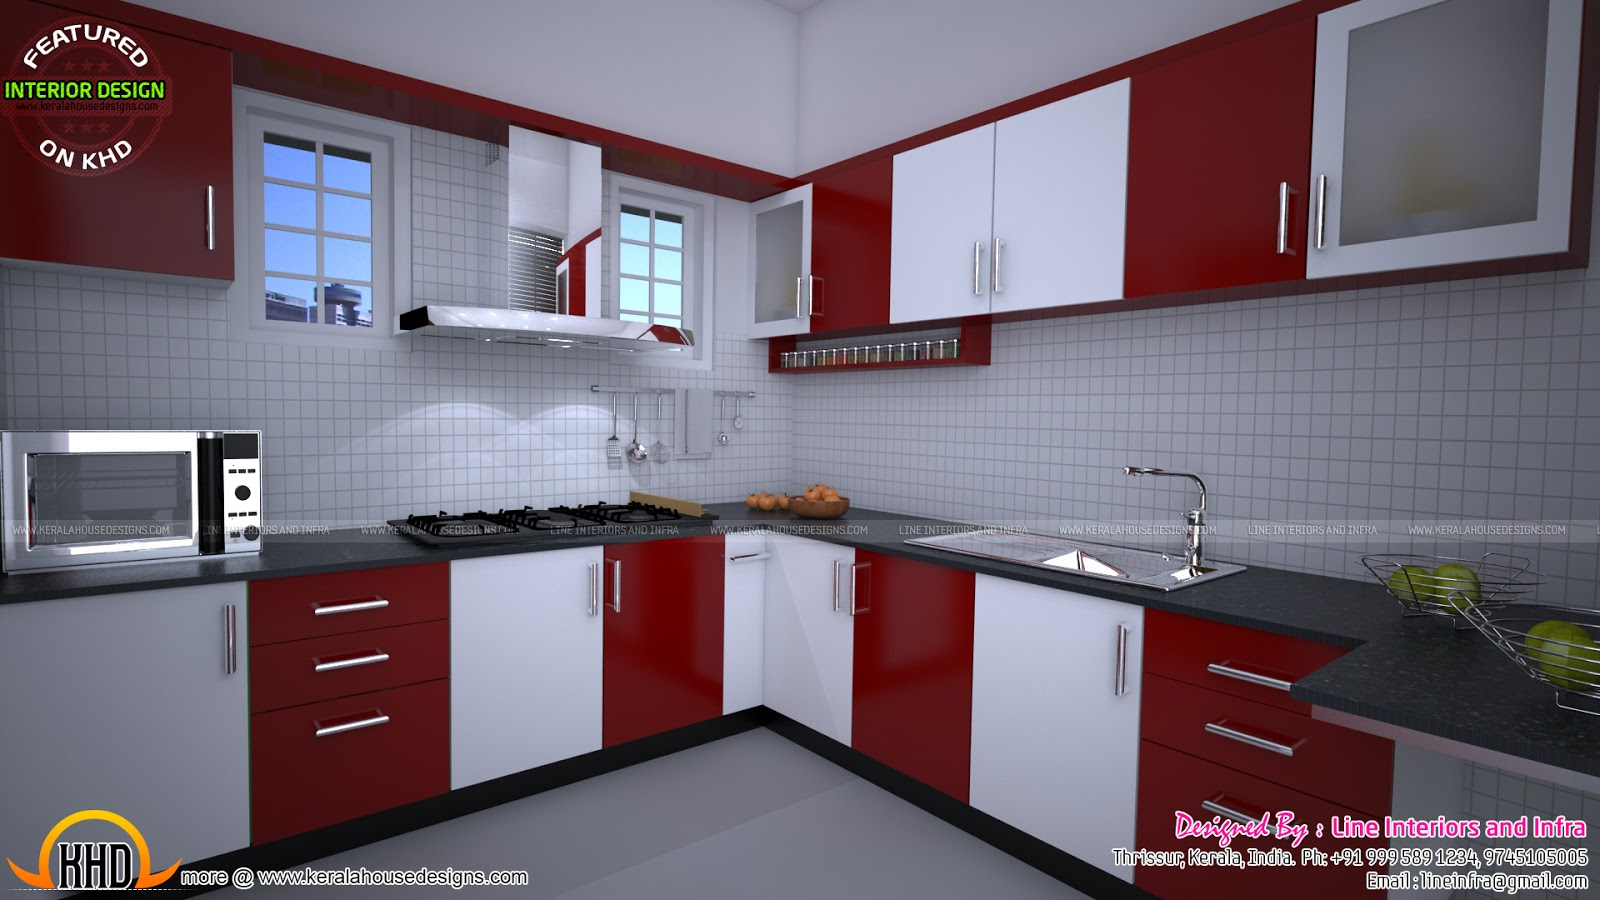 Modular kitchen, bedroom, dining interiors in Kerala